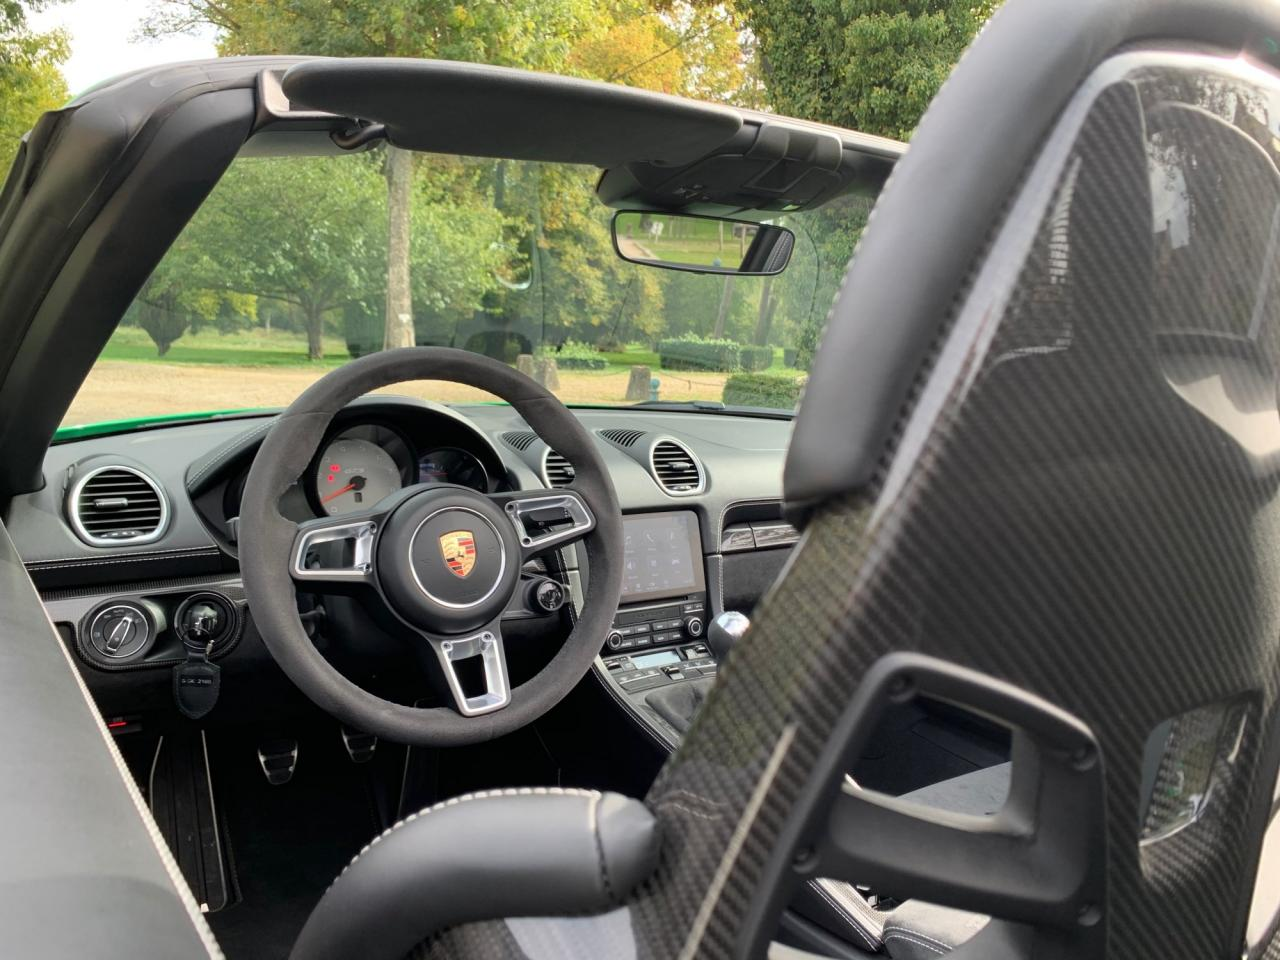 Porsche 718 Boxster GTS 4.0 test, Specs, and Review